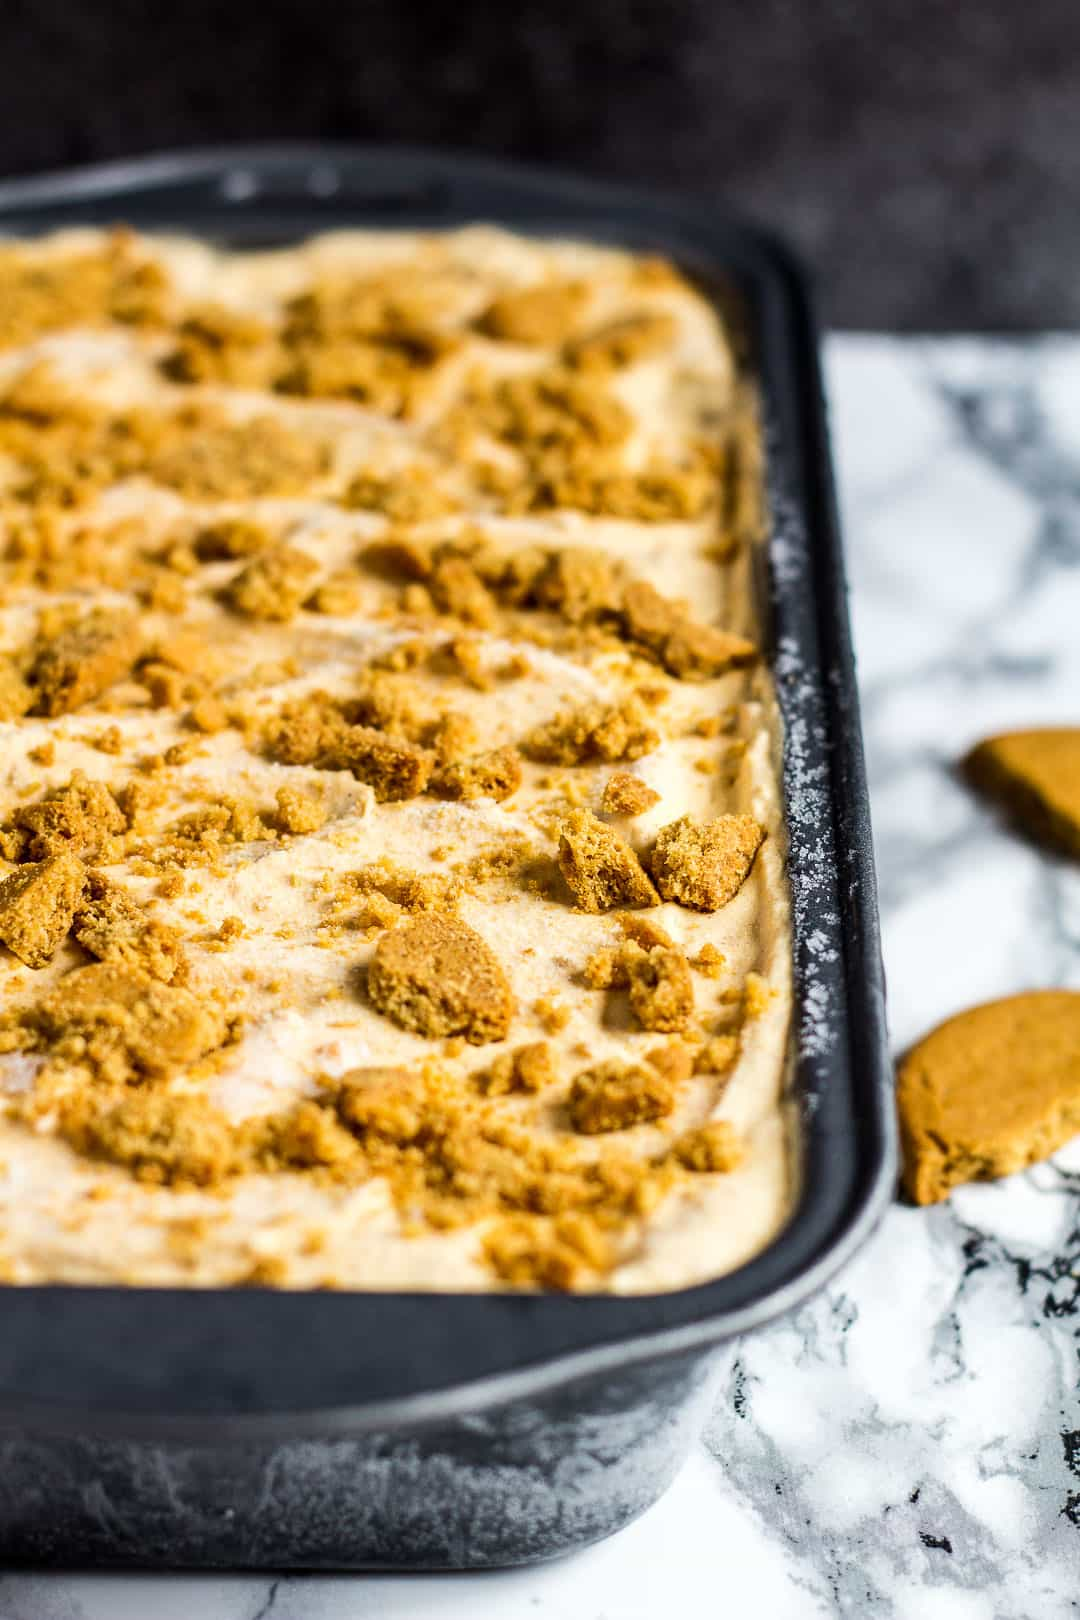 Pumpkin gingerbread ice cream in a loaf pan topped with broken ginger biscuits.